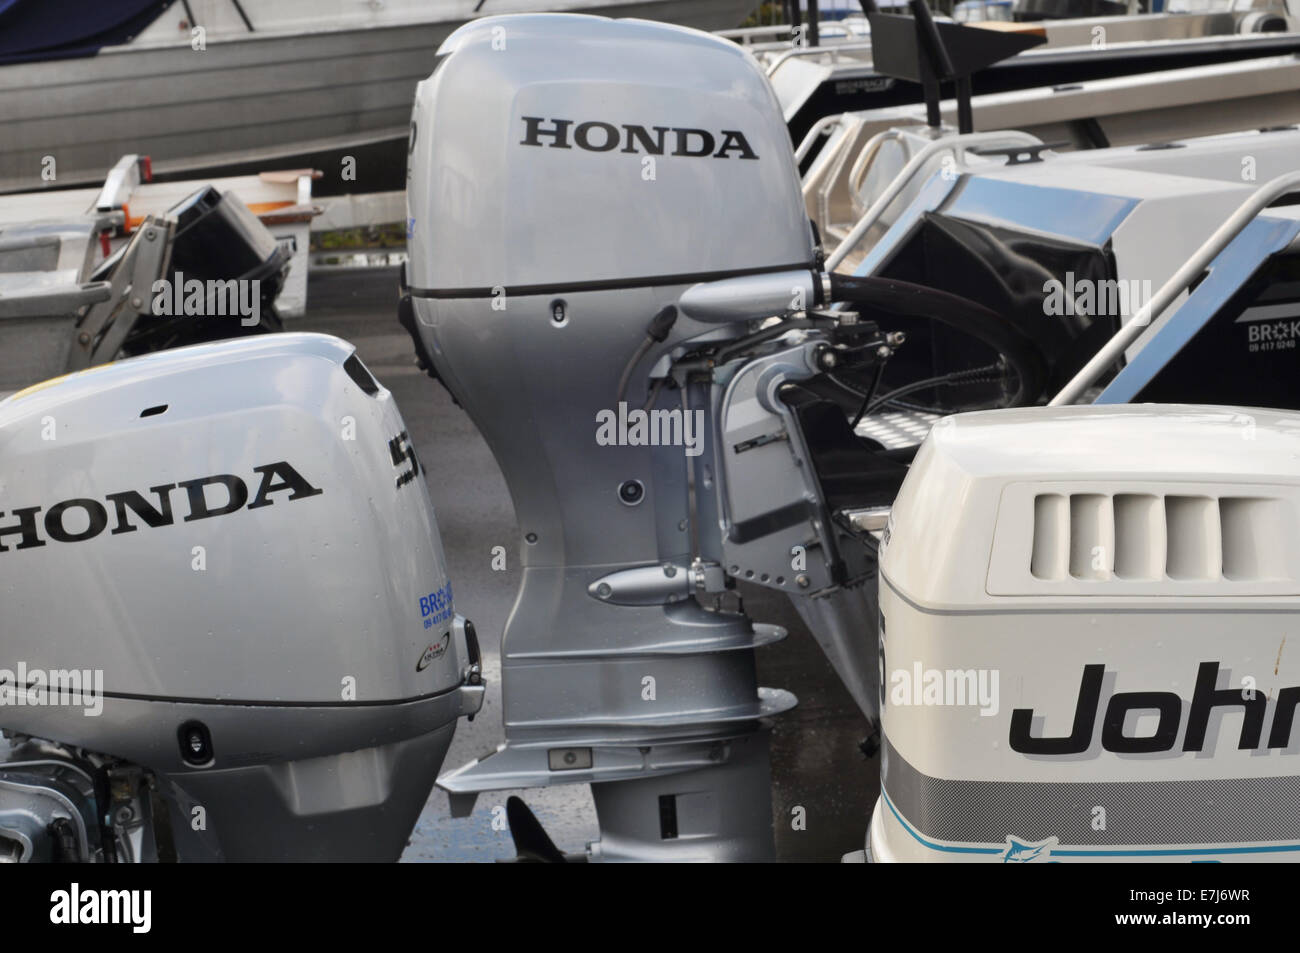 Various outboard engines on transoms of recreational vessels in boat yard ready for sale - Stock Image